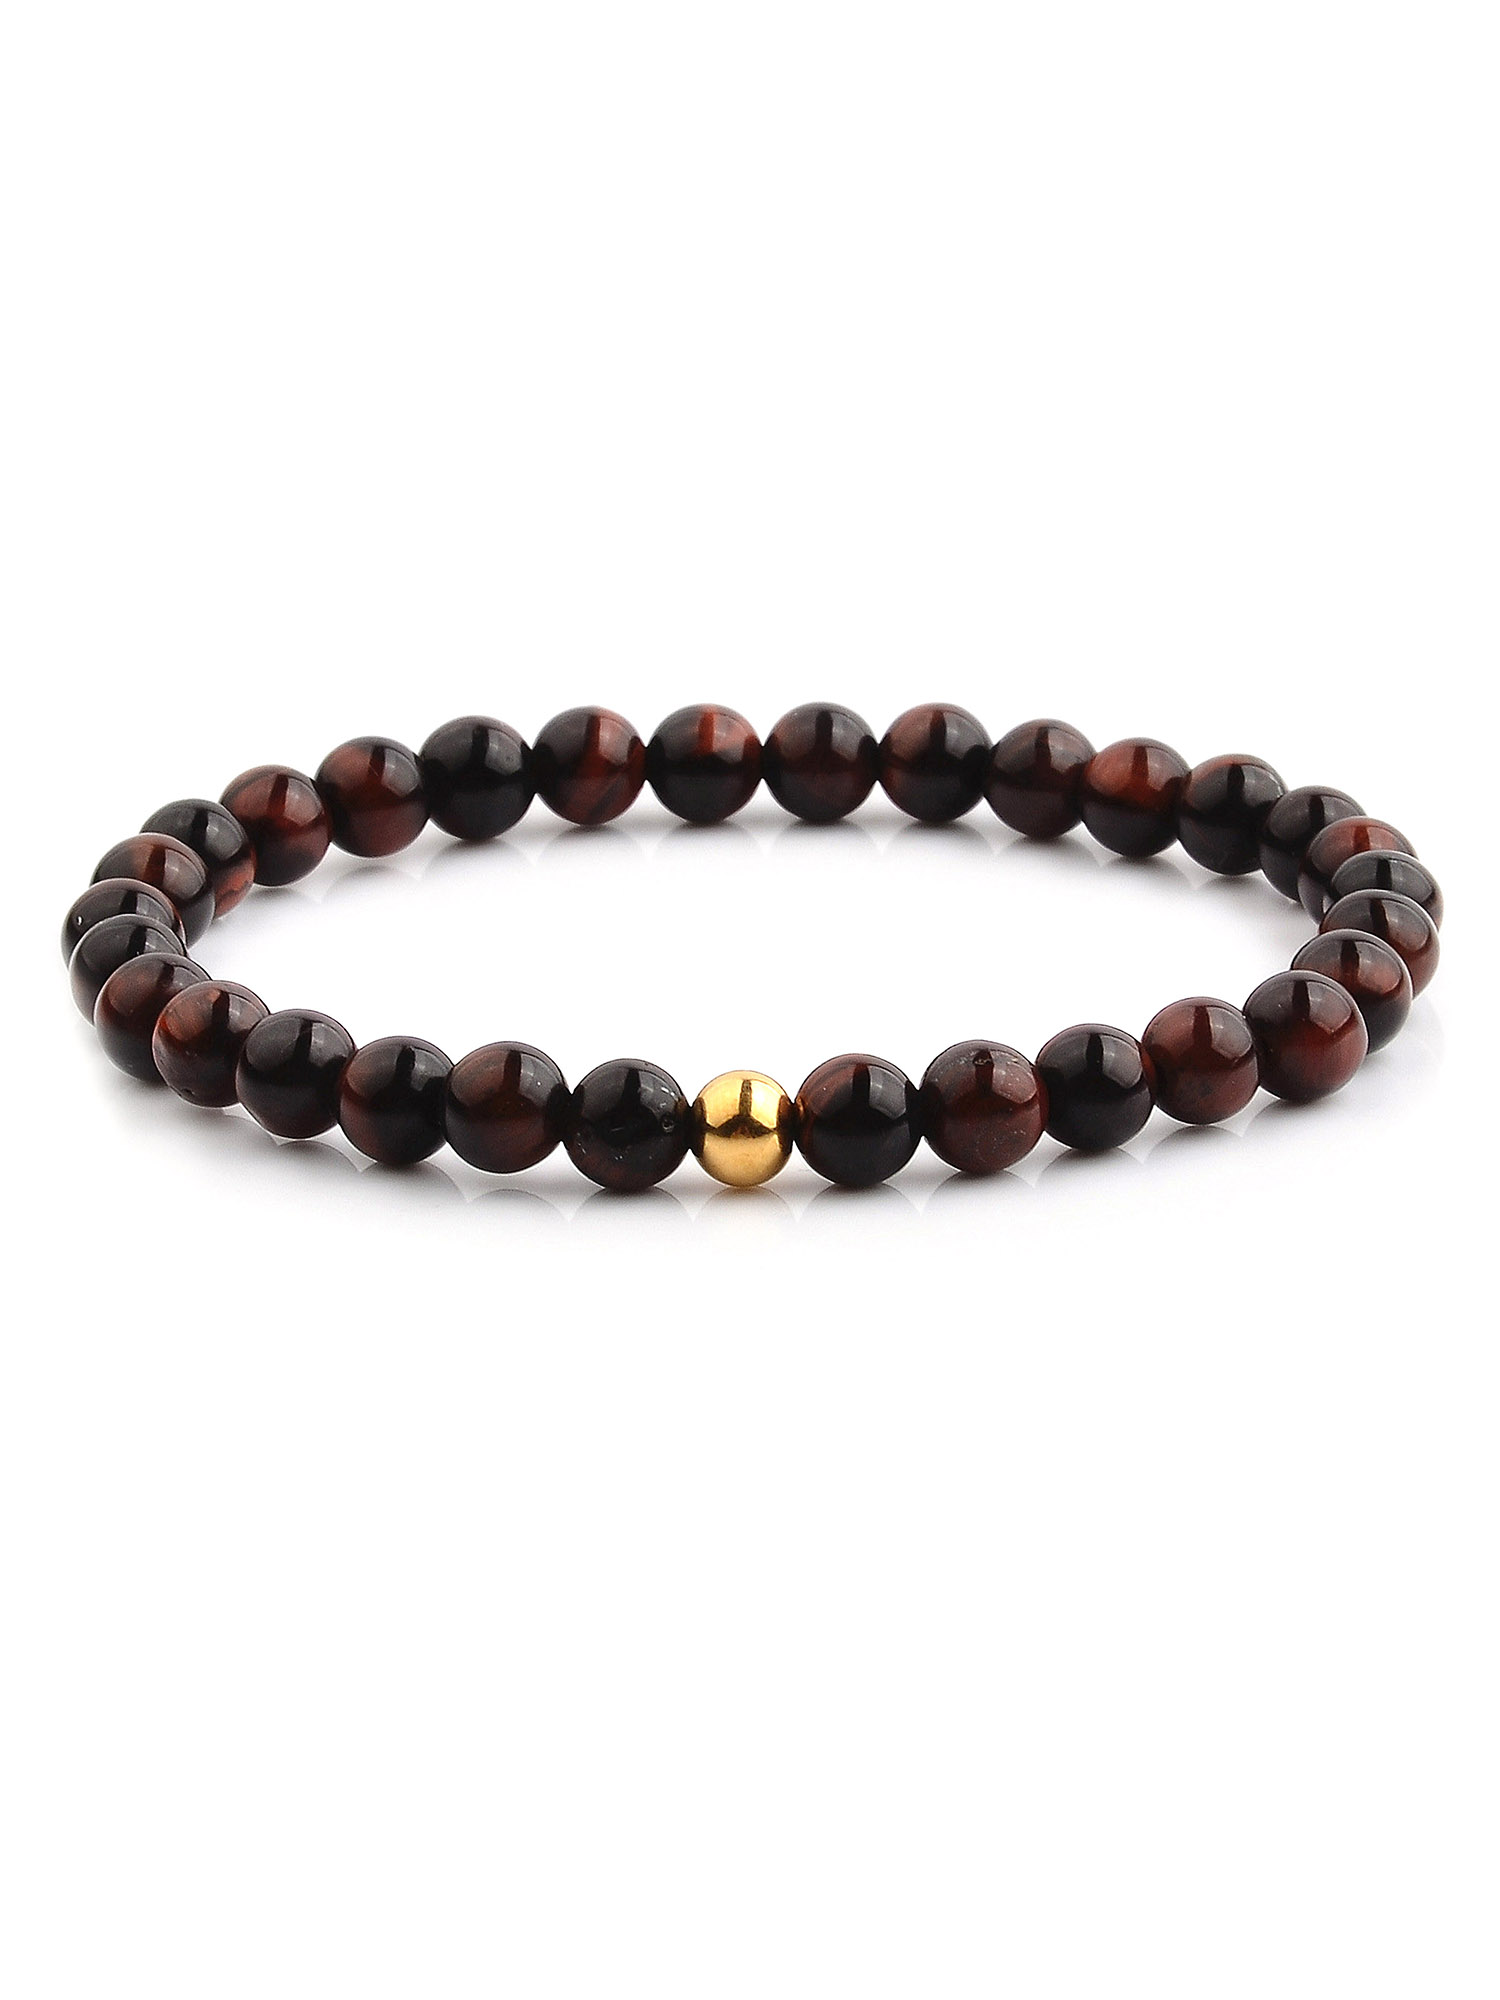 Gold Plated Stainless Steel Tiger's Eye Stone Stretch Bracelet (6.5mm)